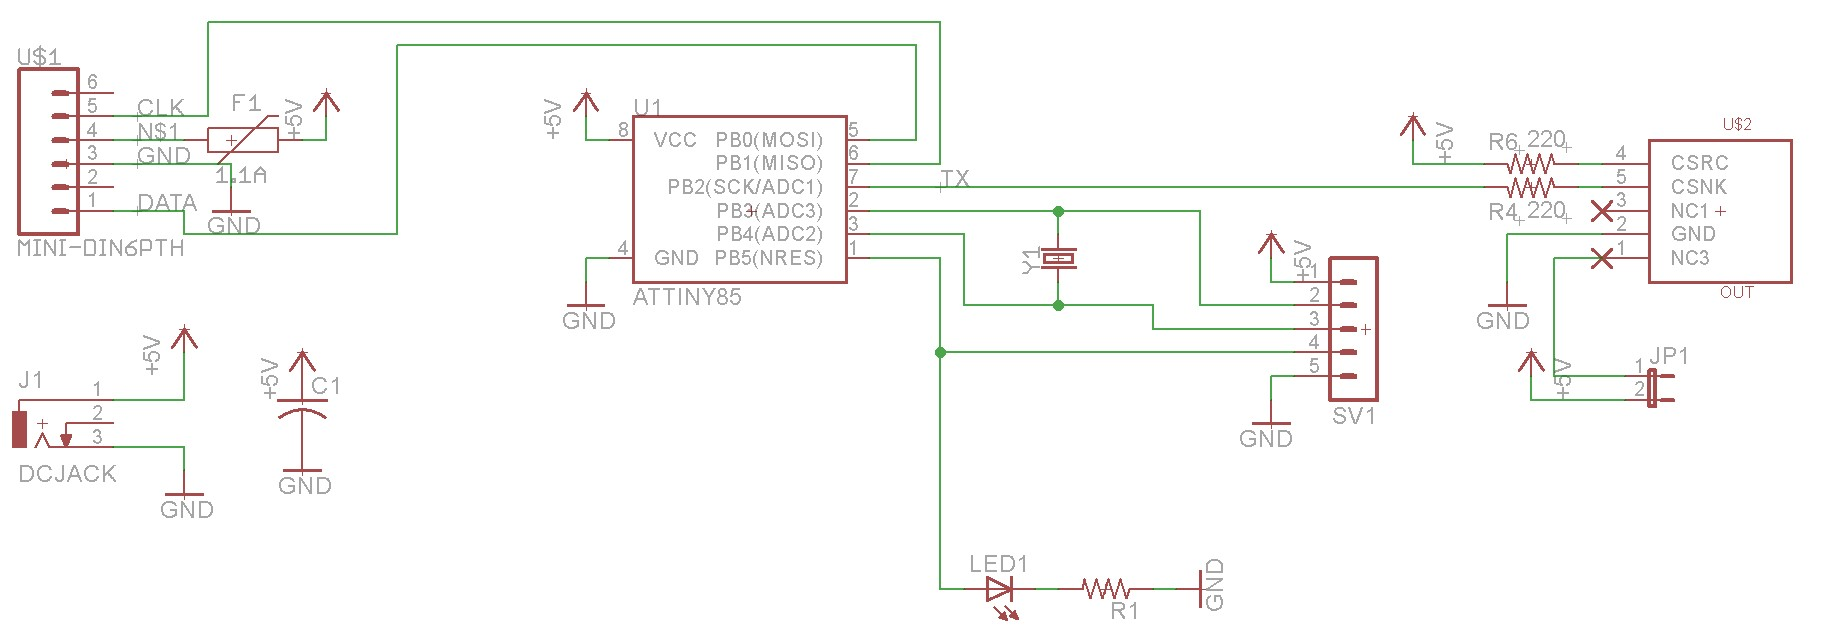 Keyboard P 2 Connector Wiring Diagram - wrg 4423 male usb to